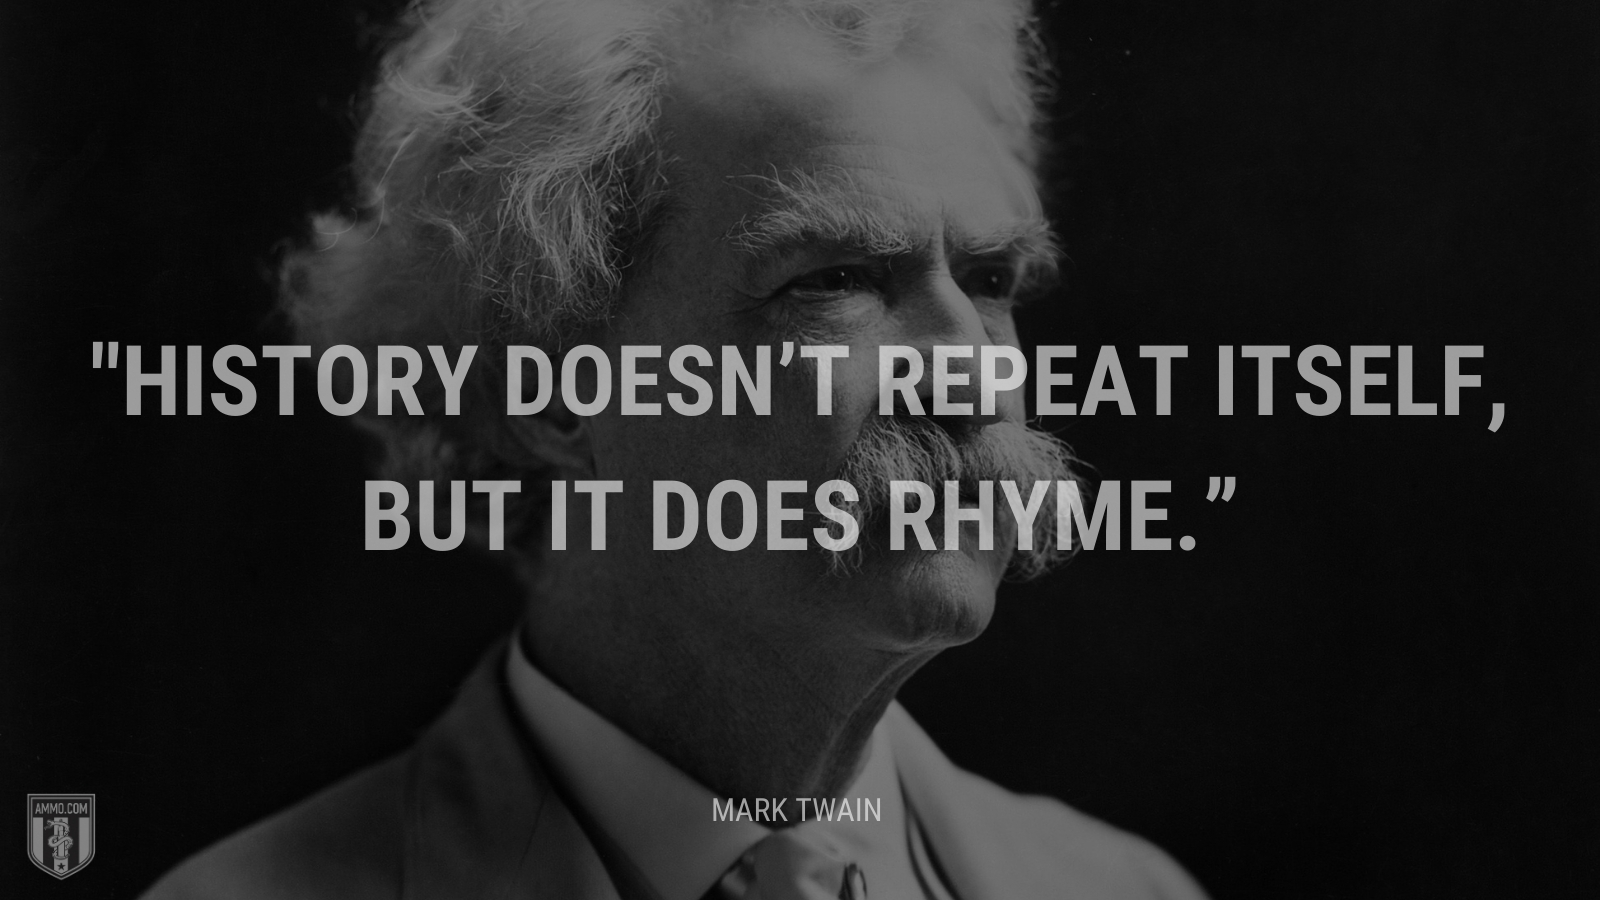 History doesn't repeat itself, but it does rhyme. - Mark Twain